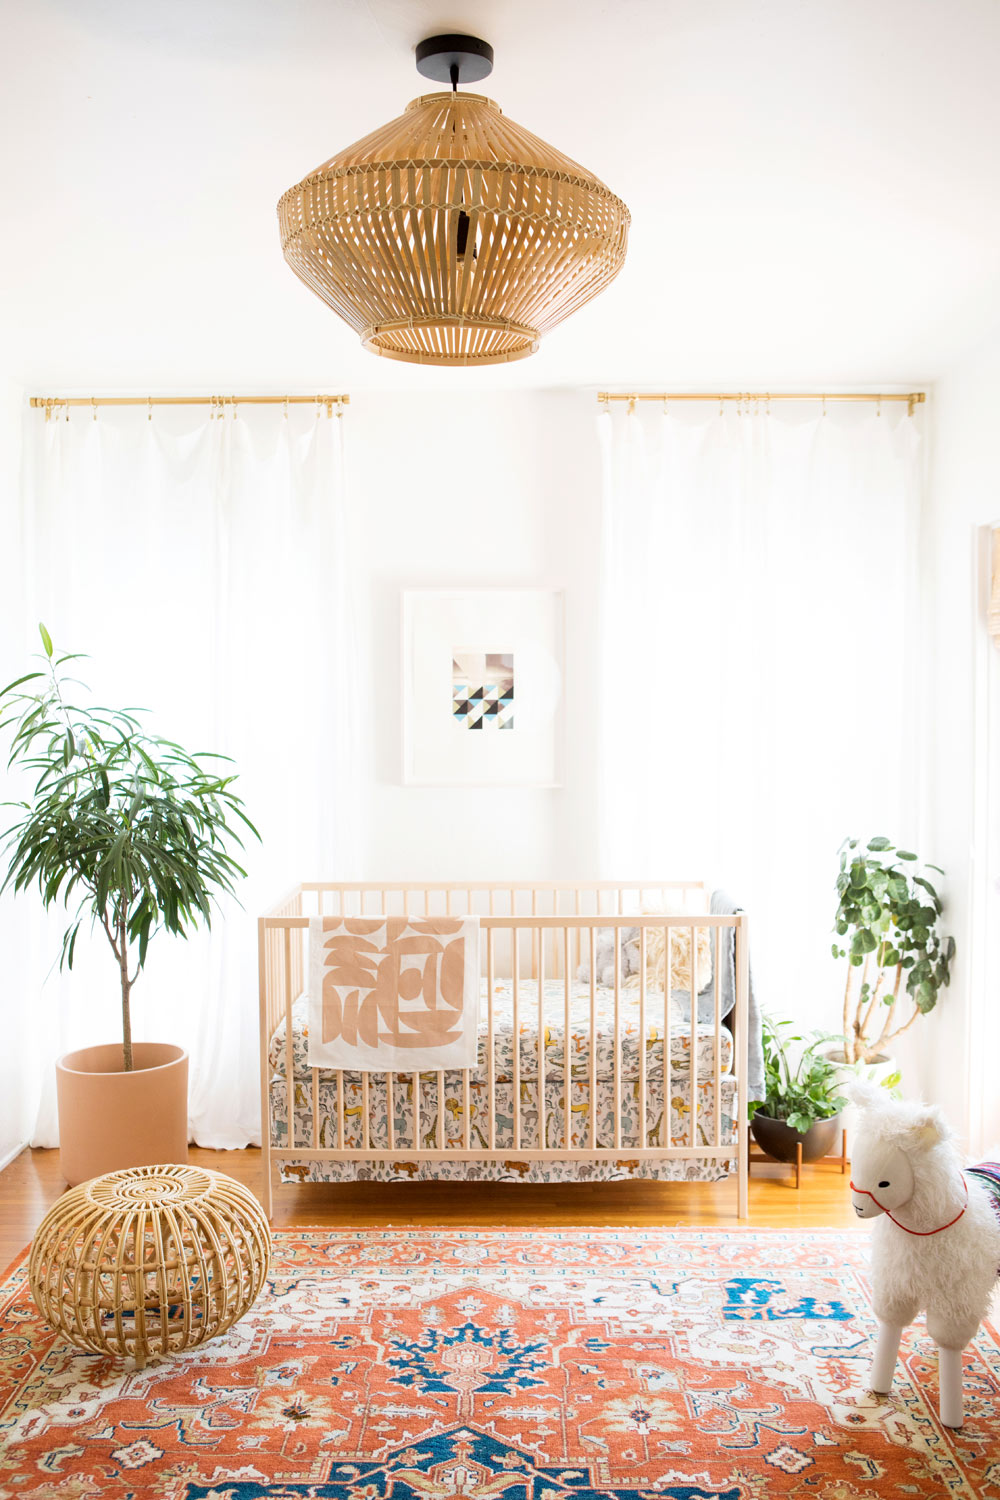 Nursery filled with natural materials